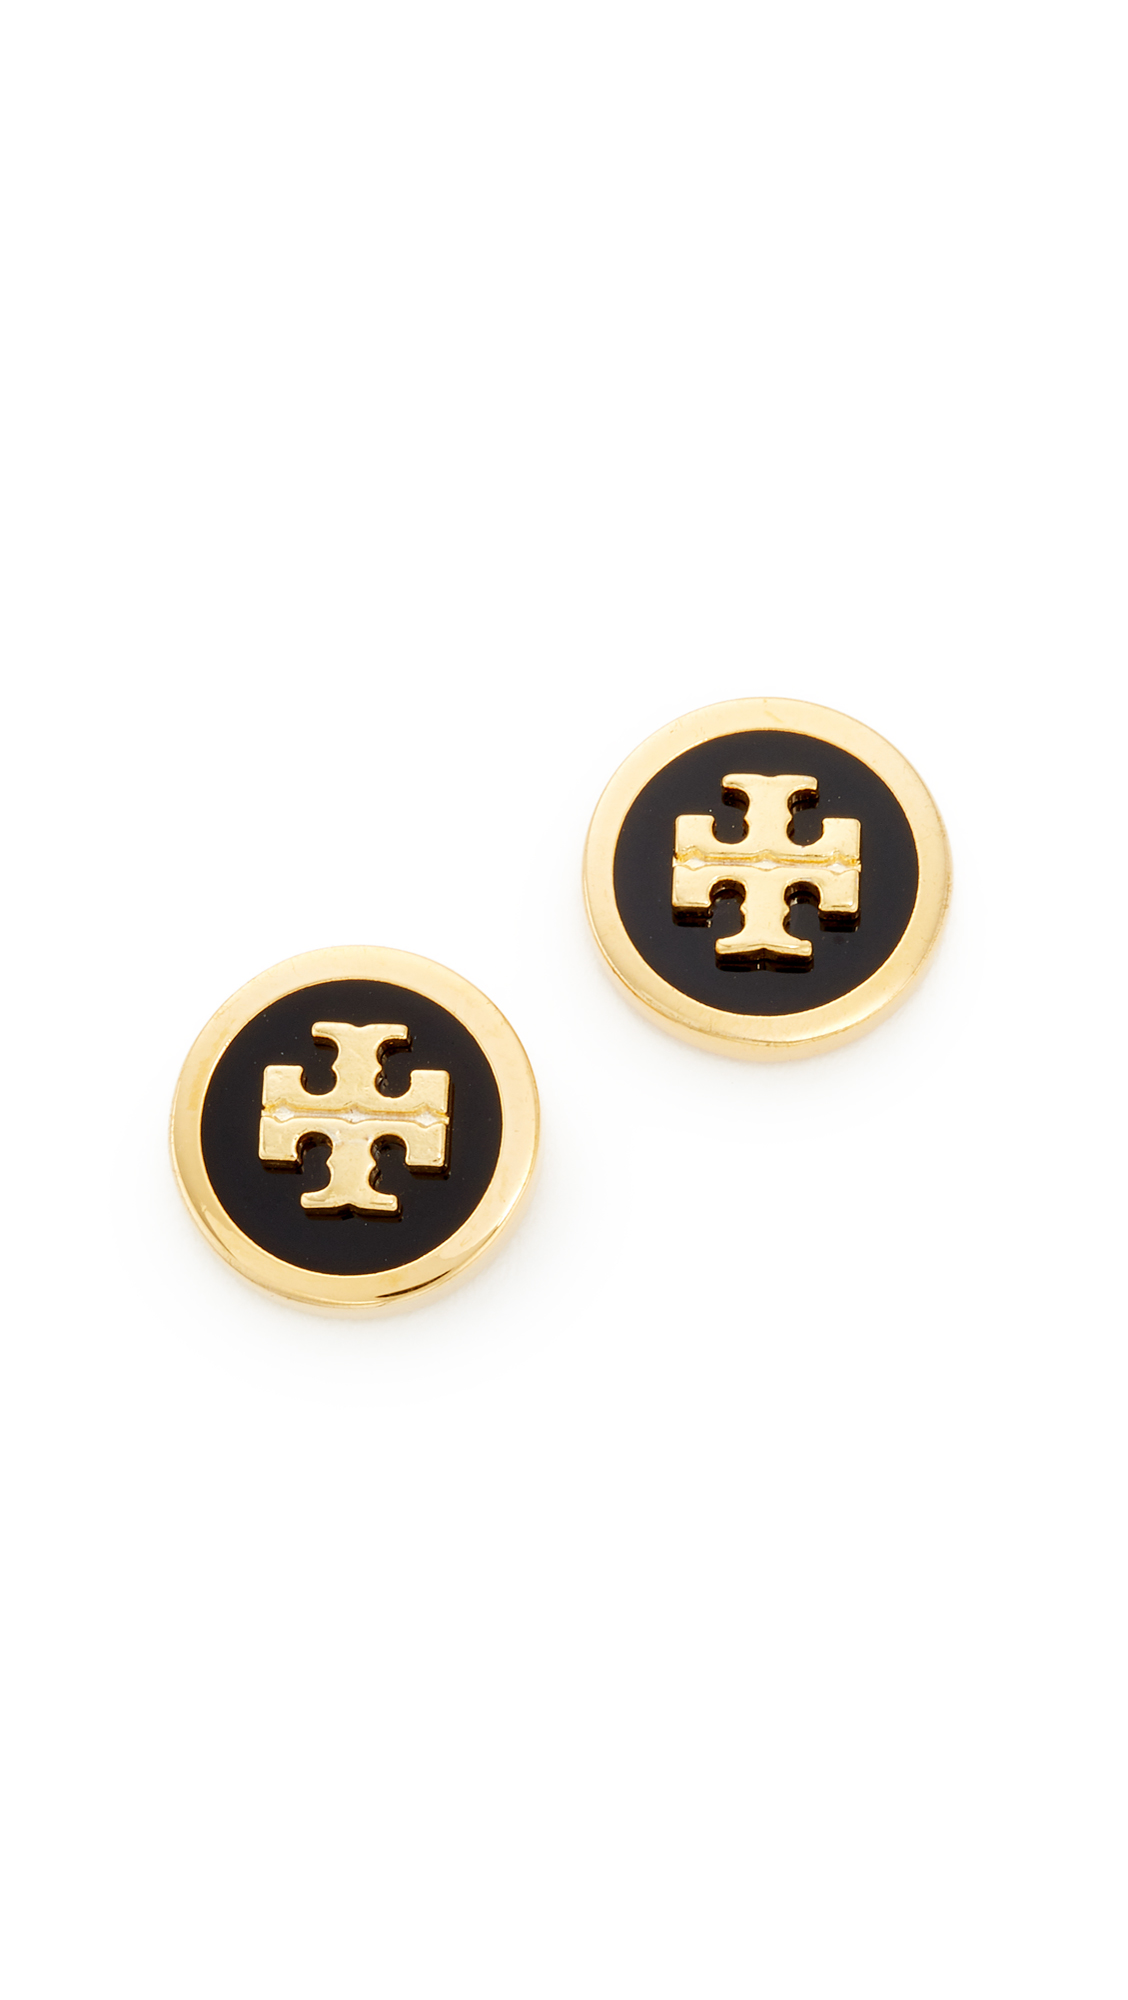 Tory Burch Raised Logo Stud Earrings - Black/Tory Gold